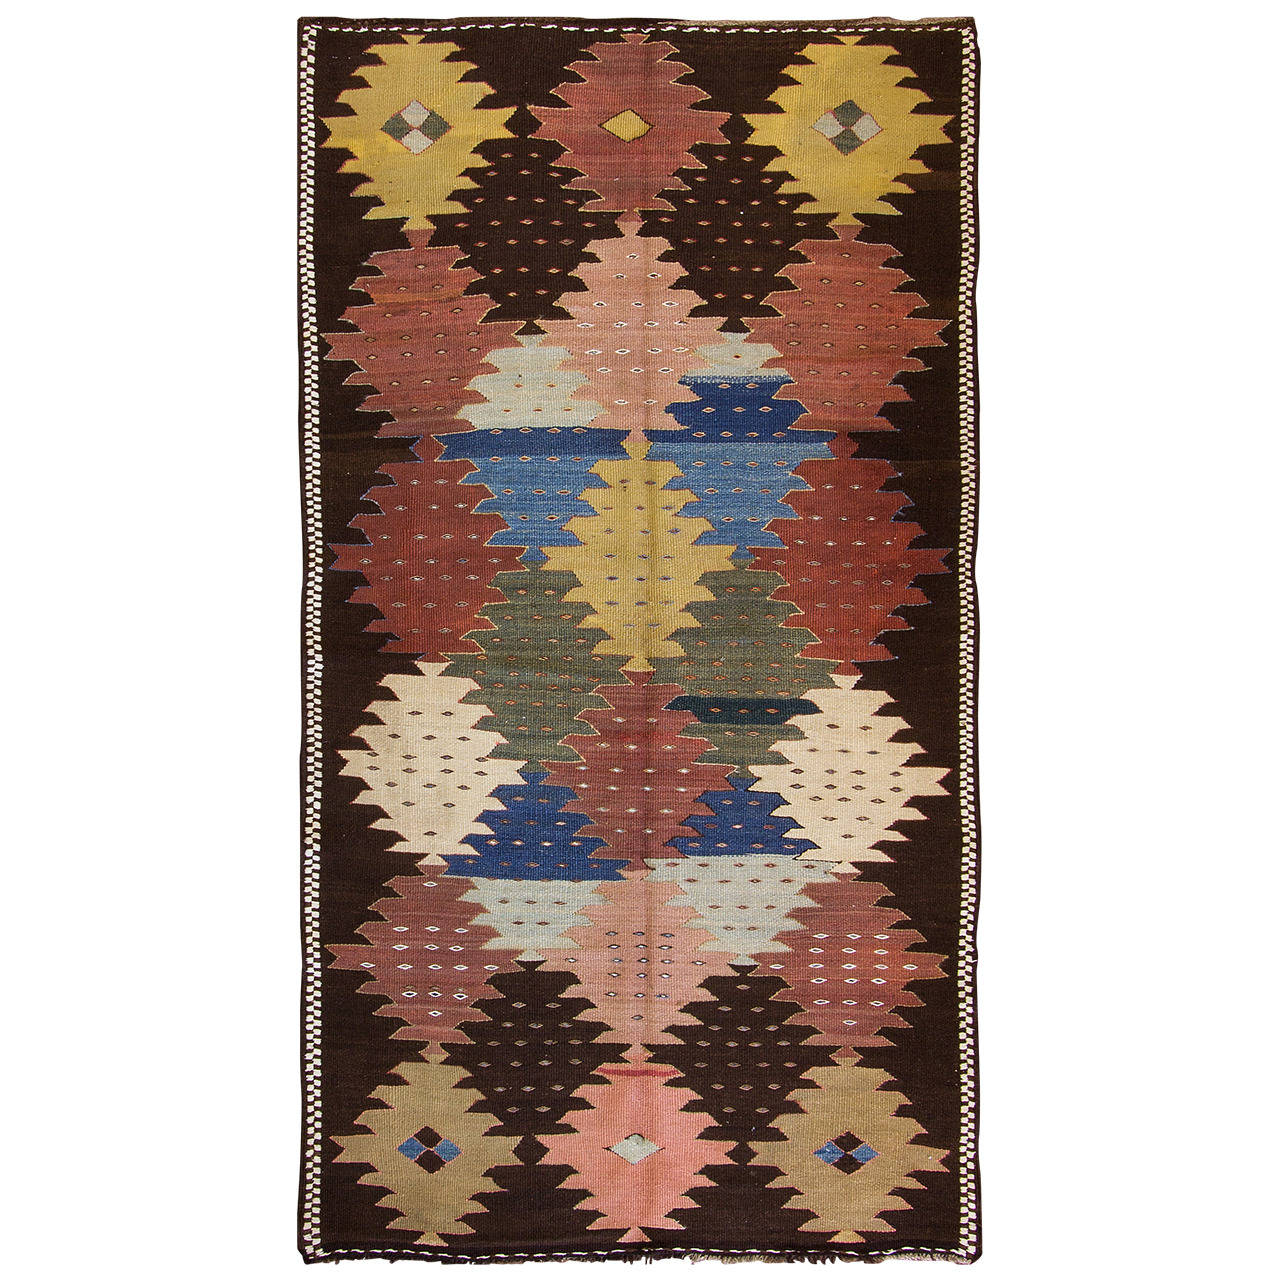 Southwest Persian Kilim Rug, Circa 1920 At 1stdibs